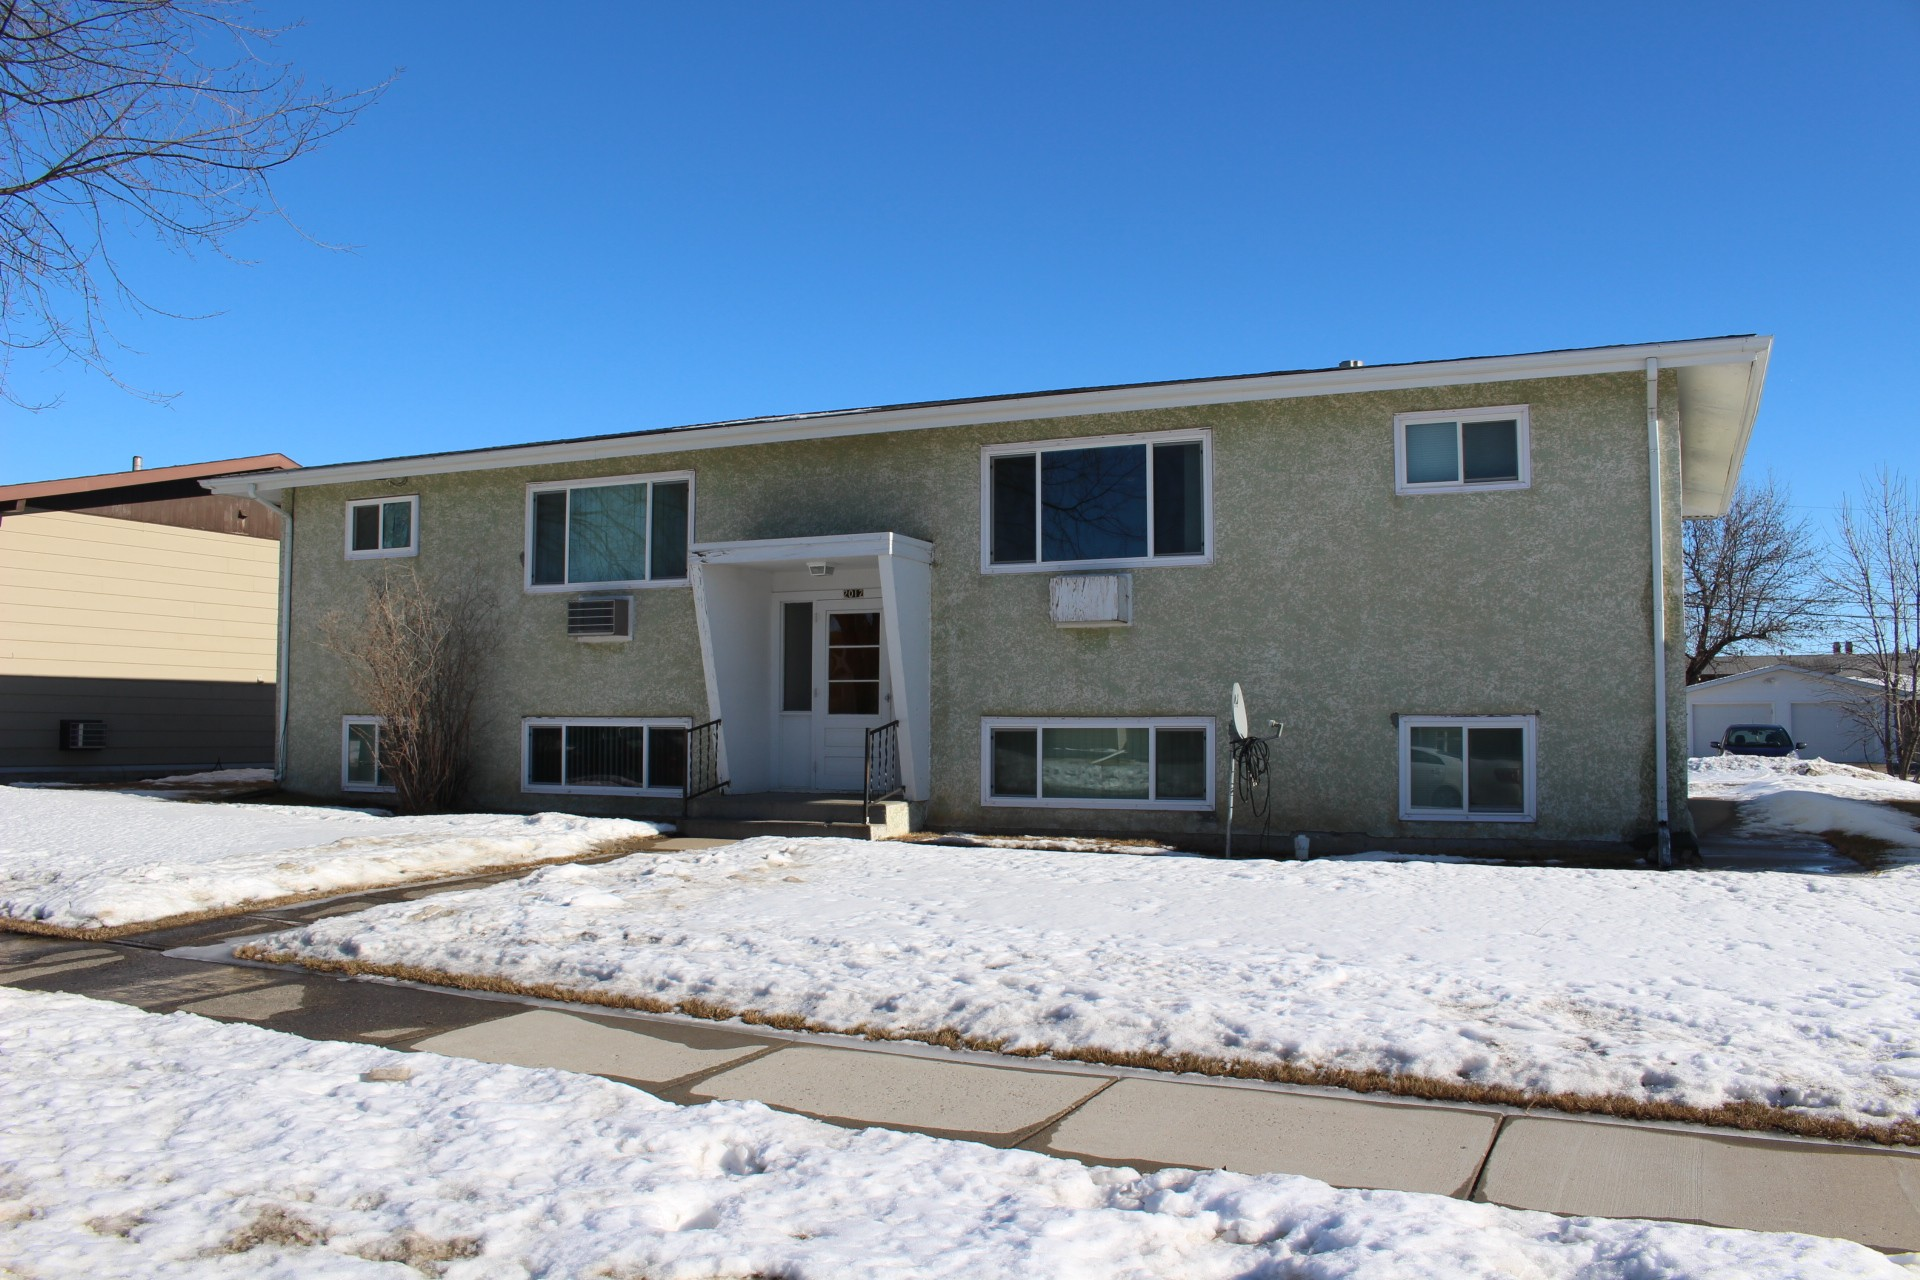 2012 5th st nw apartments for rent in minot nd 58703 zumper for Apartment complex for rent